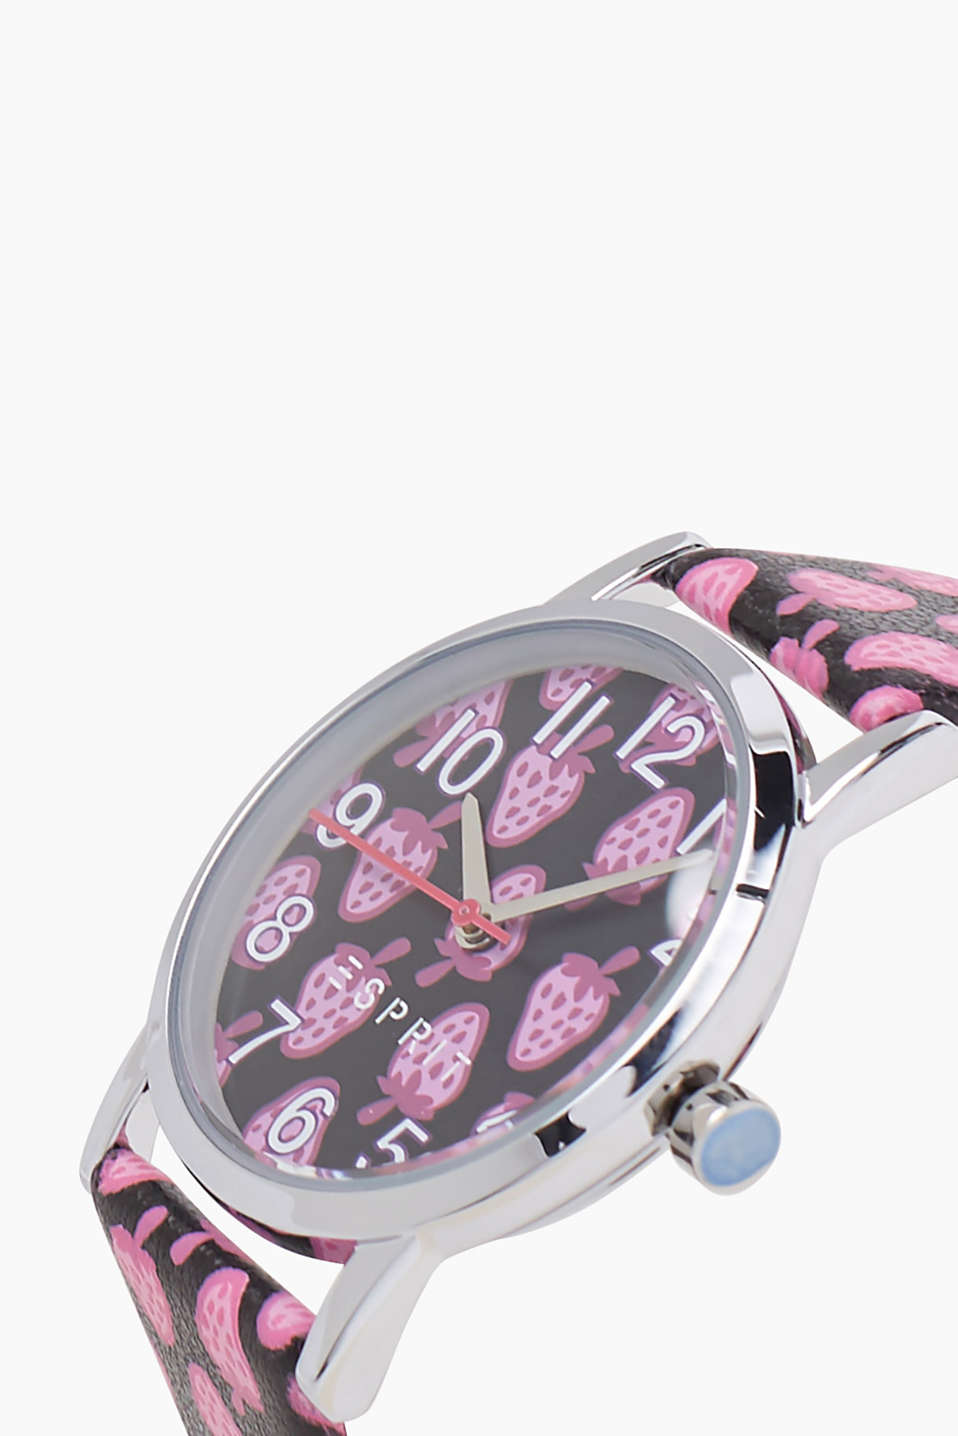 Kids watch with a strawberry design